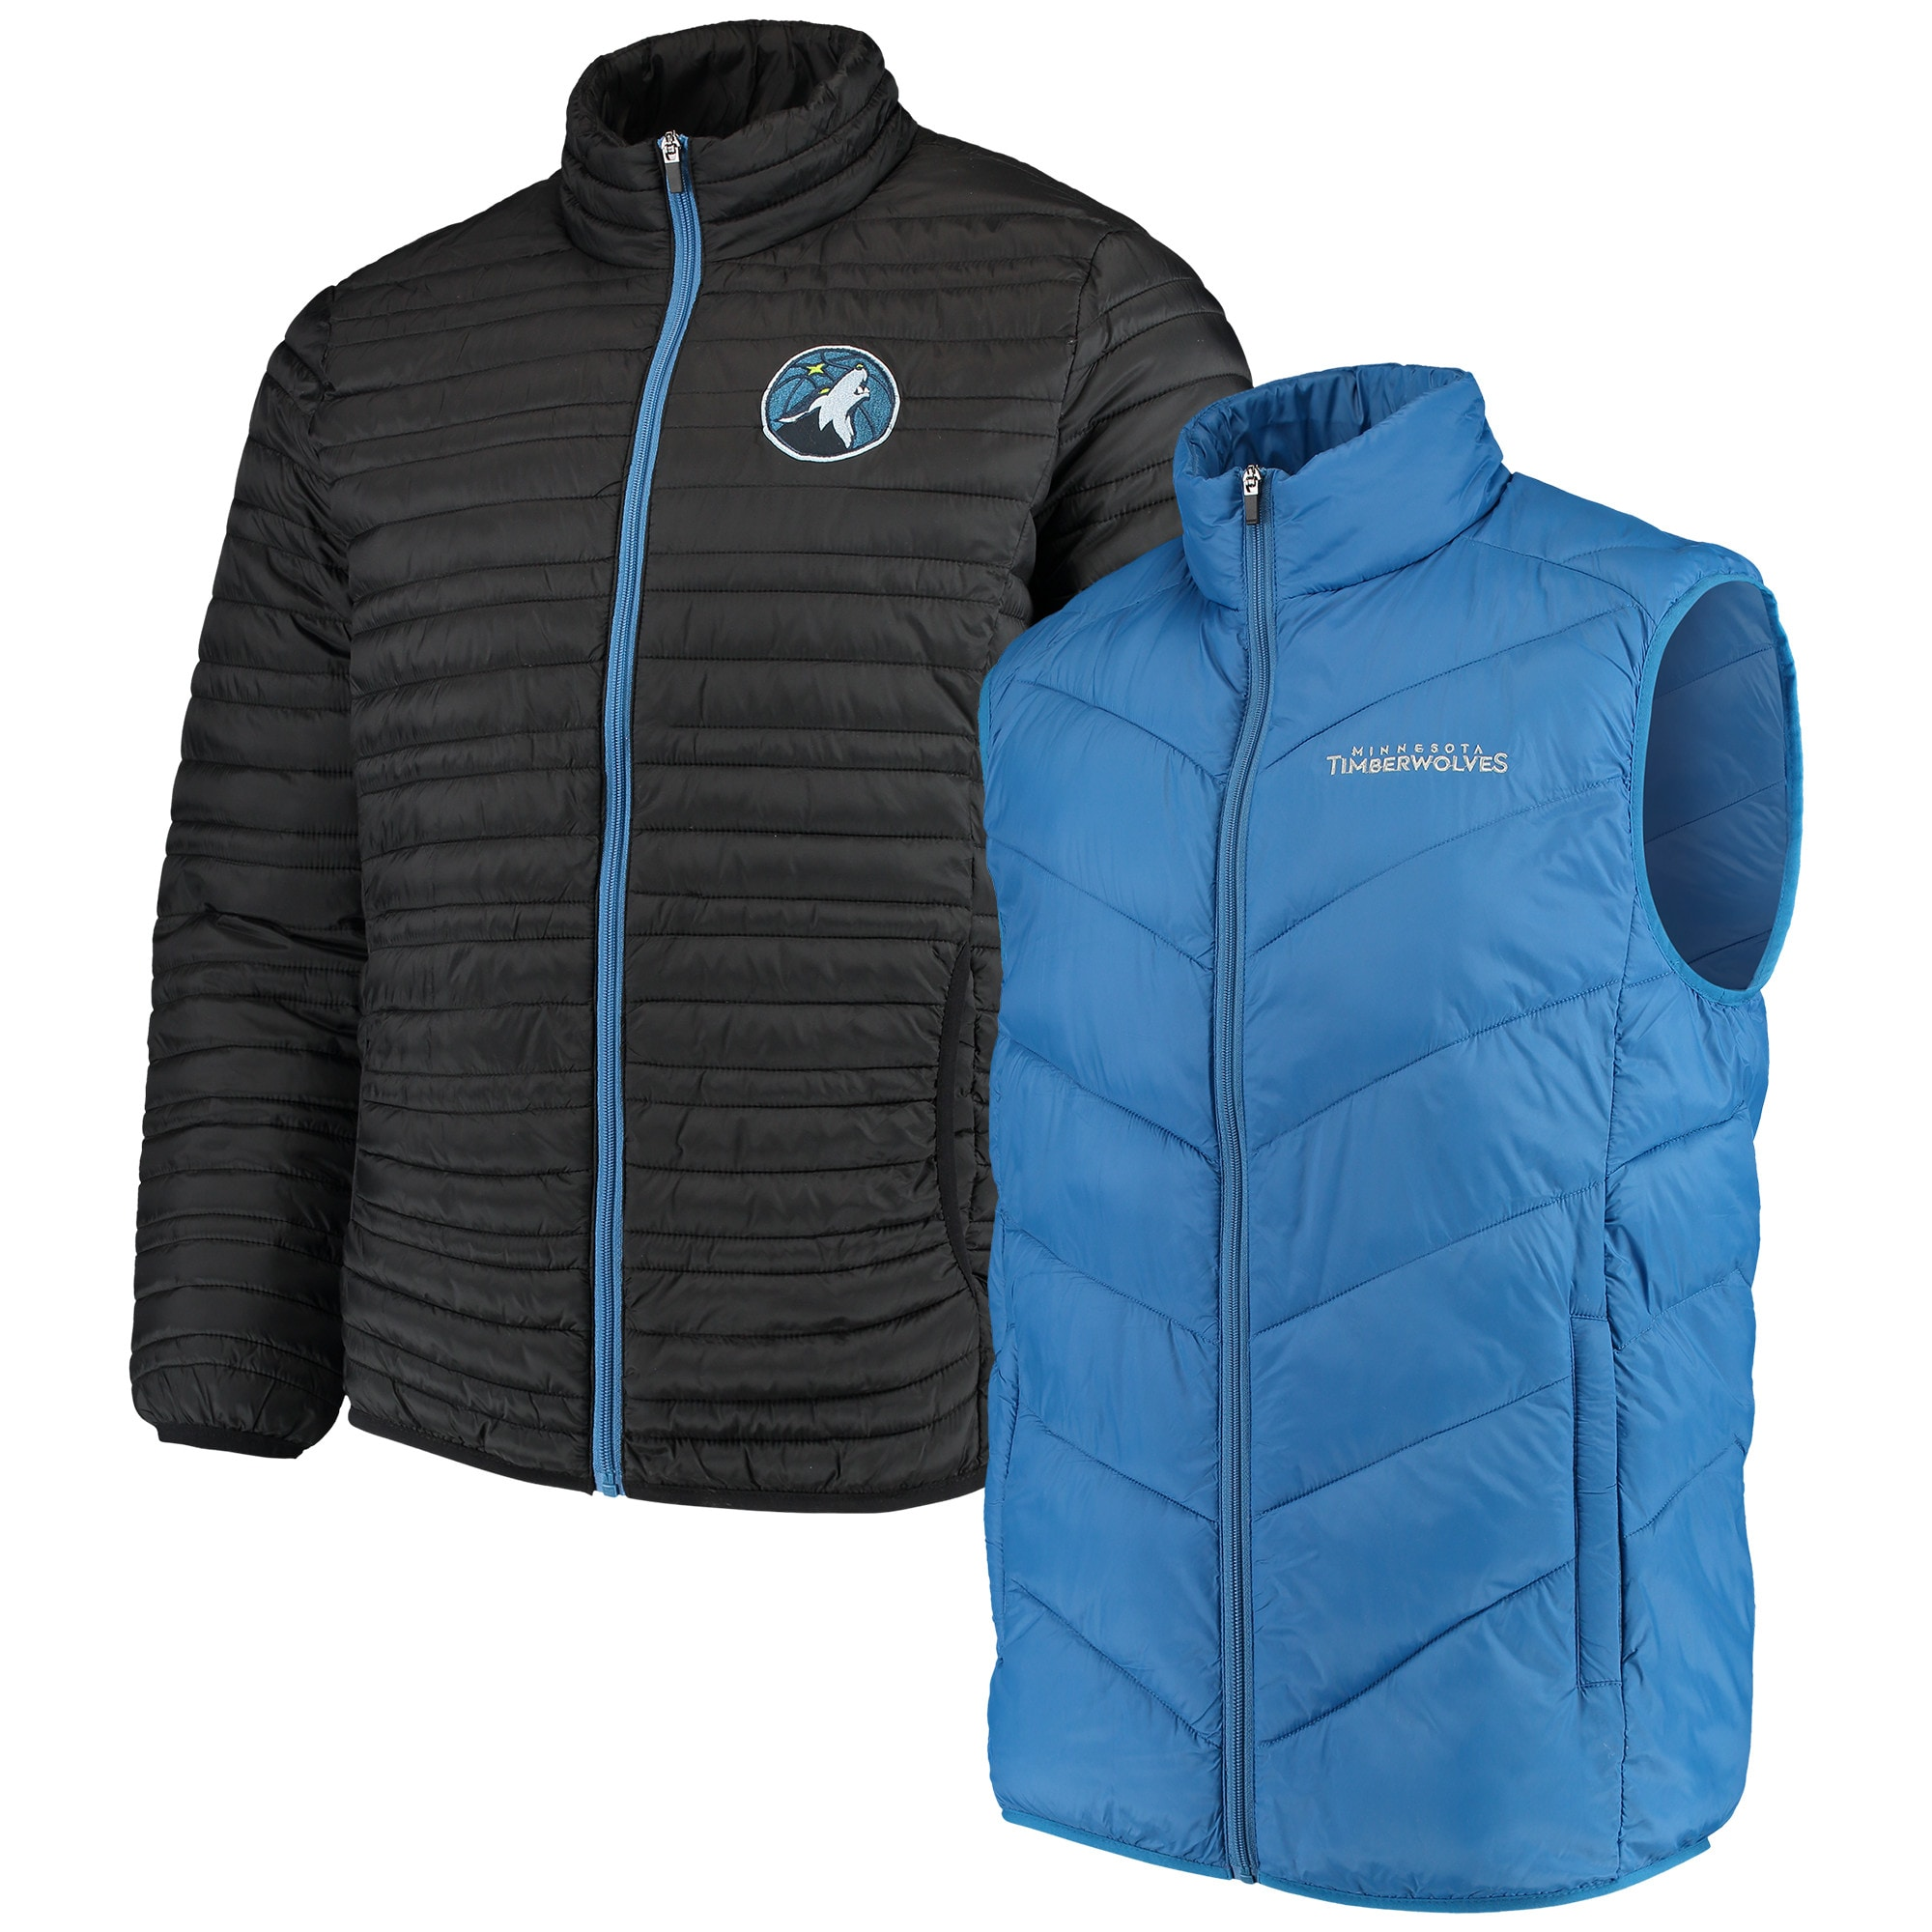 Minnesota Timberwolves G-III Sports by Carl Banks Three & Out 3-in-1 System Full-Zip Vest & Jacket Set - Blue/Navy